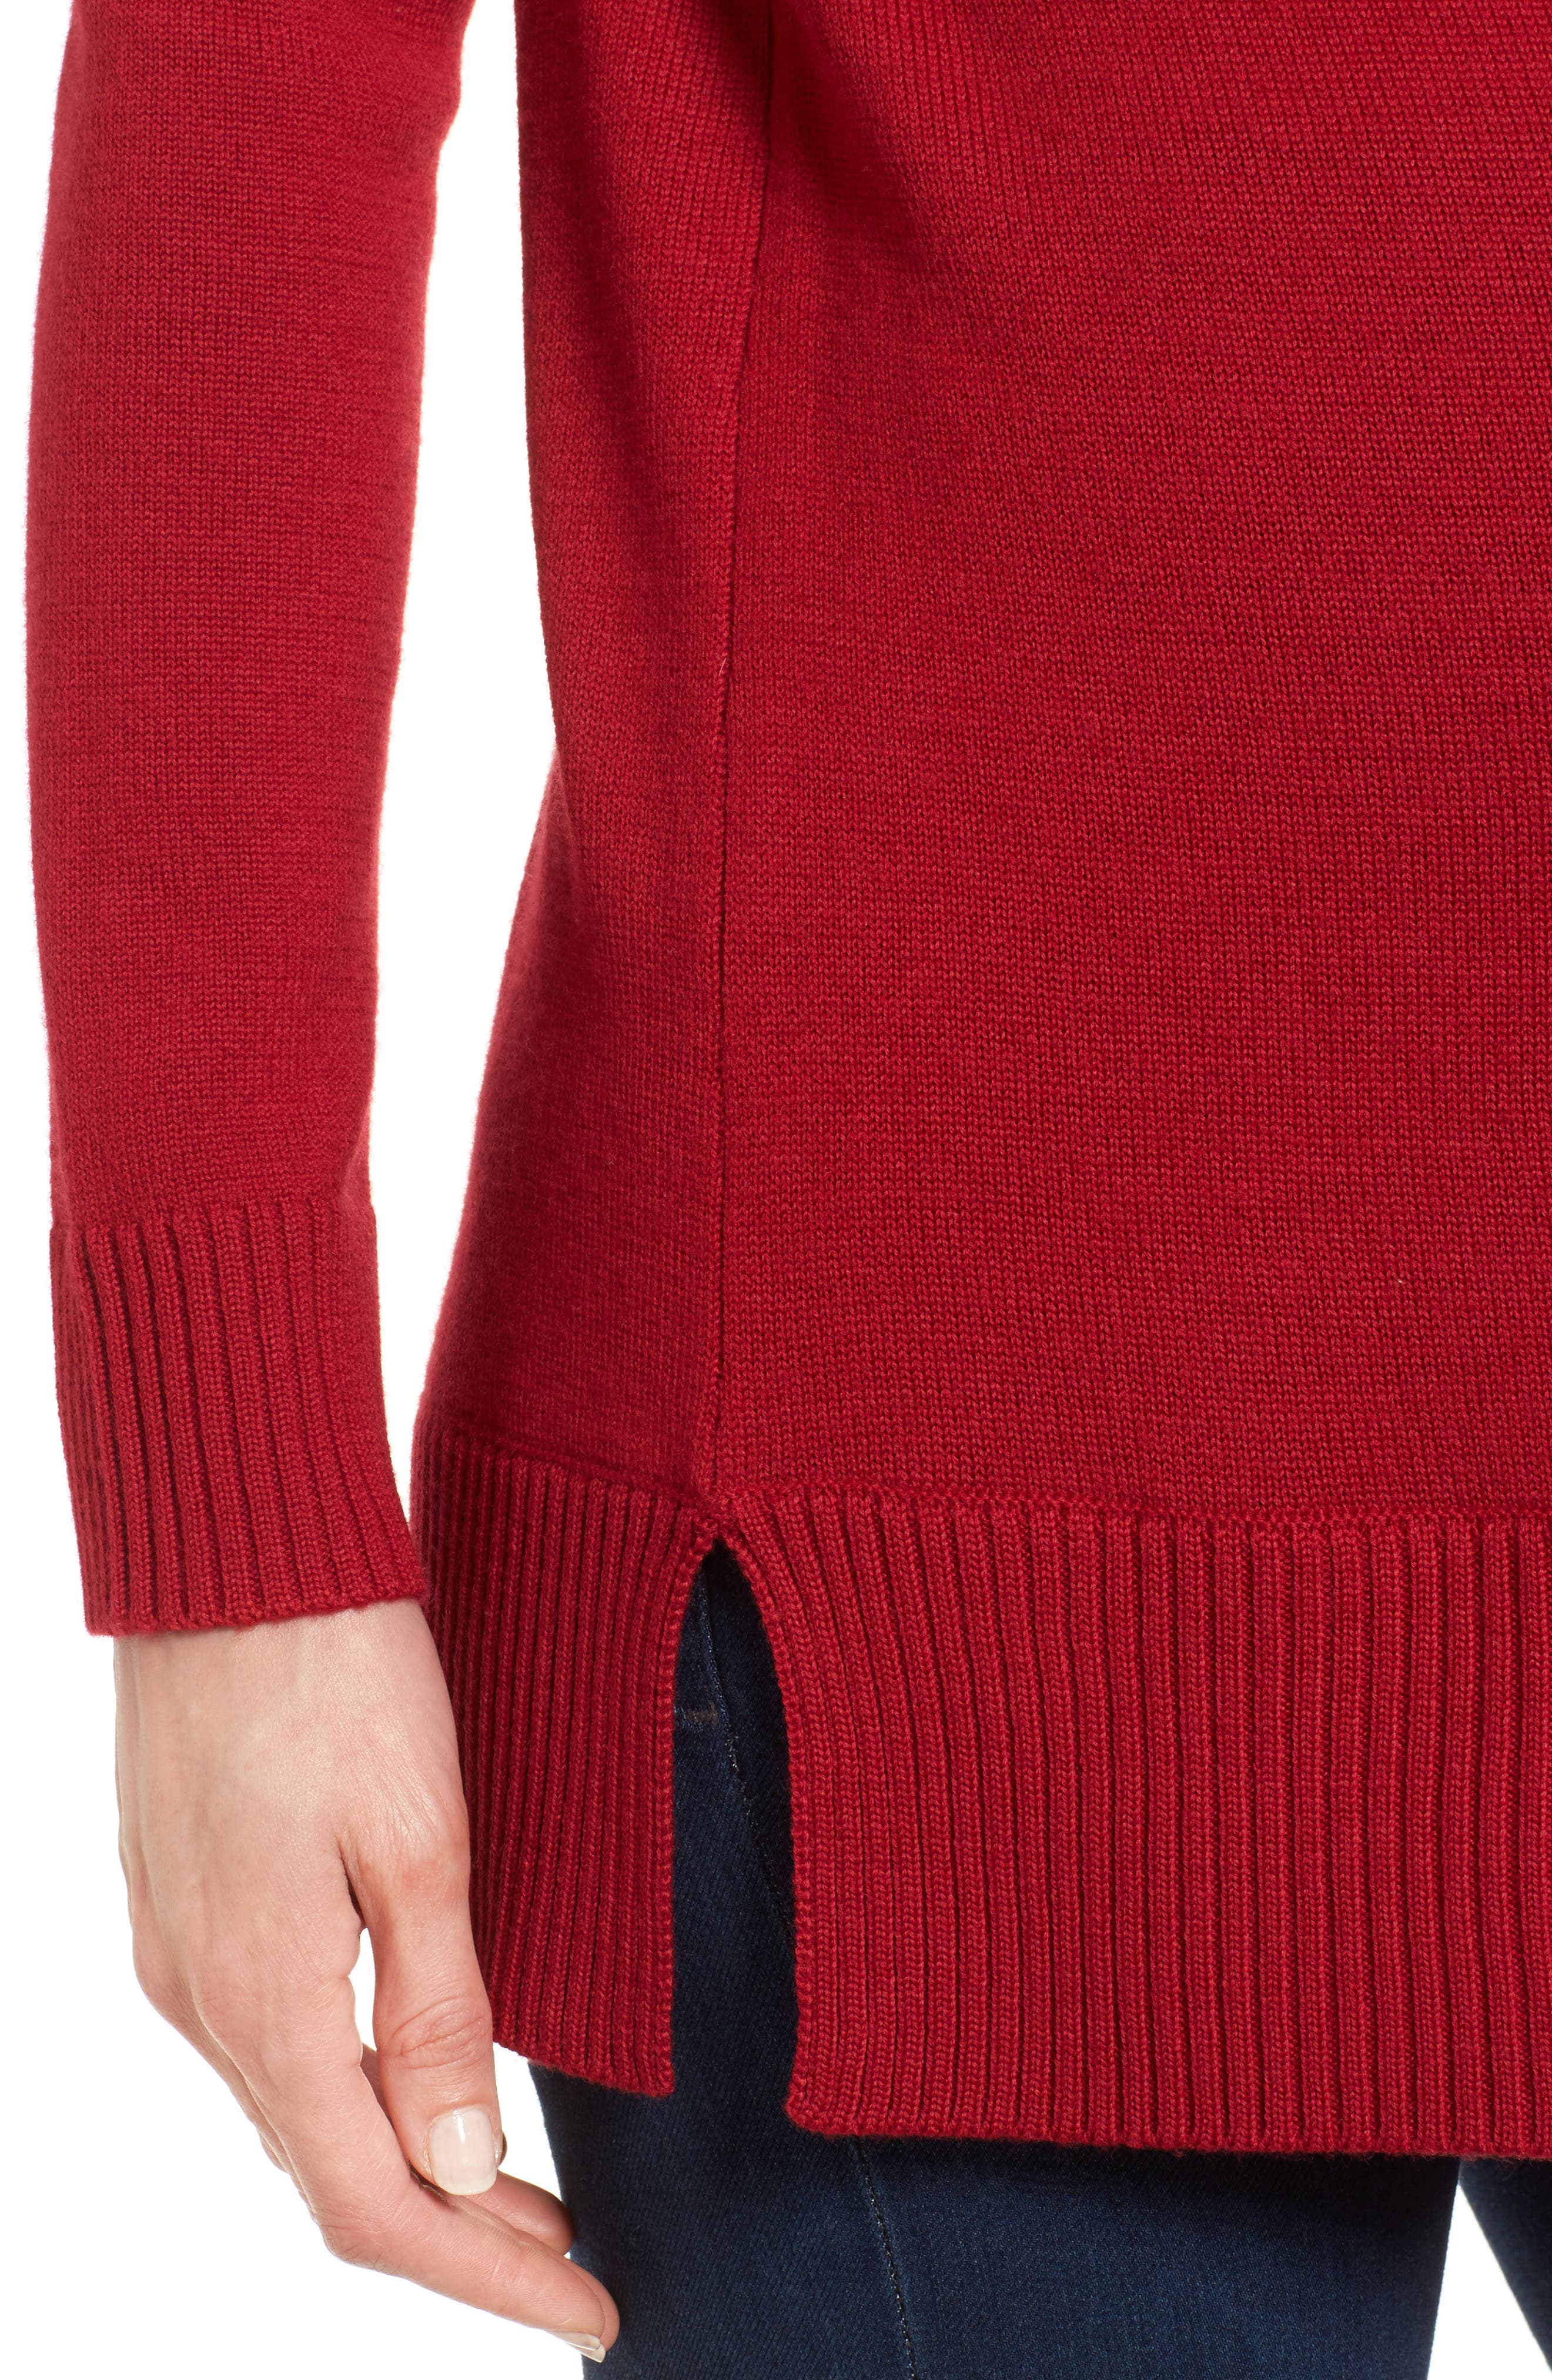 Tessa Turtleneck Wool Maternity Sweater,                             Alternate thumbnail 4, color,                             Cardamom Red